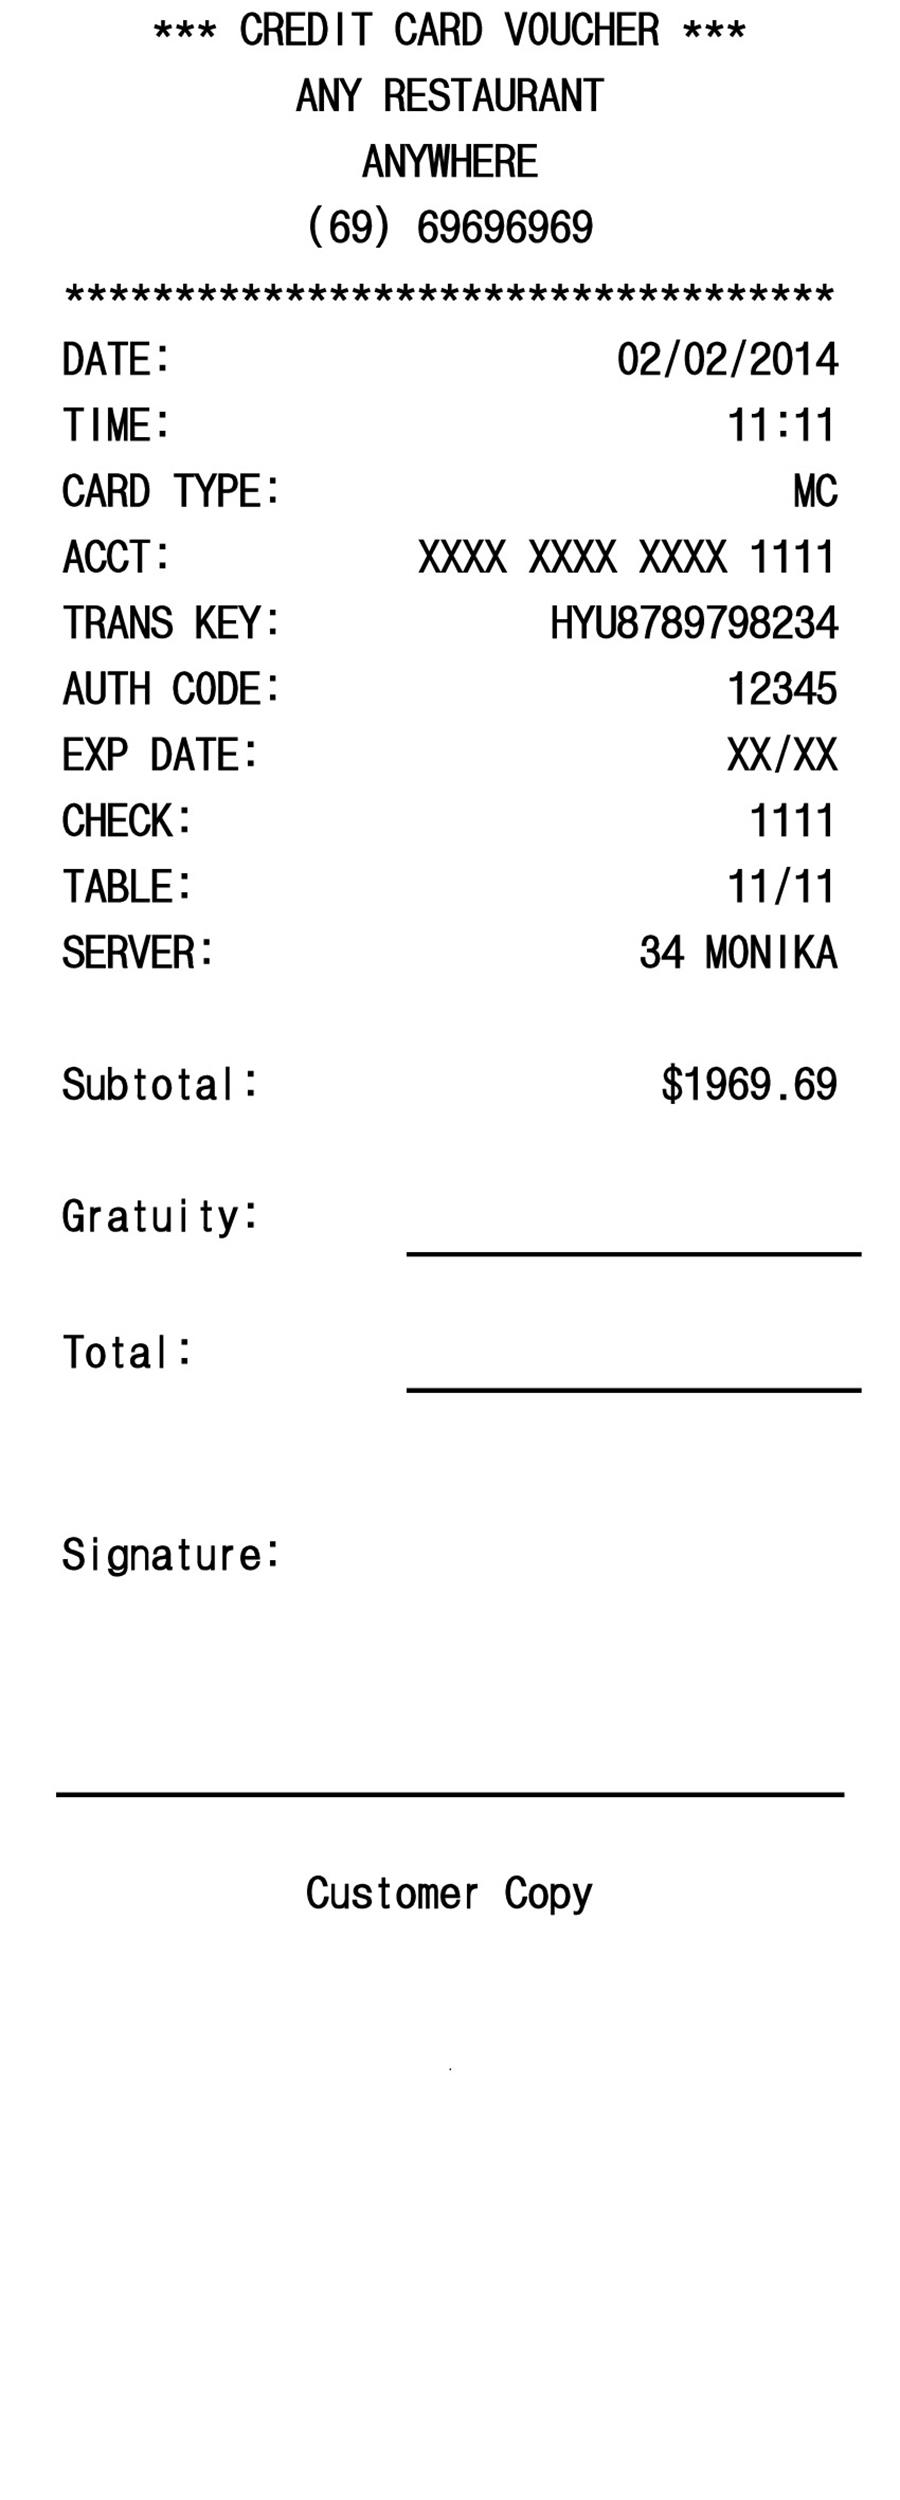 Free Receipt Template from templatelab.com